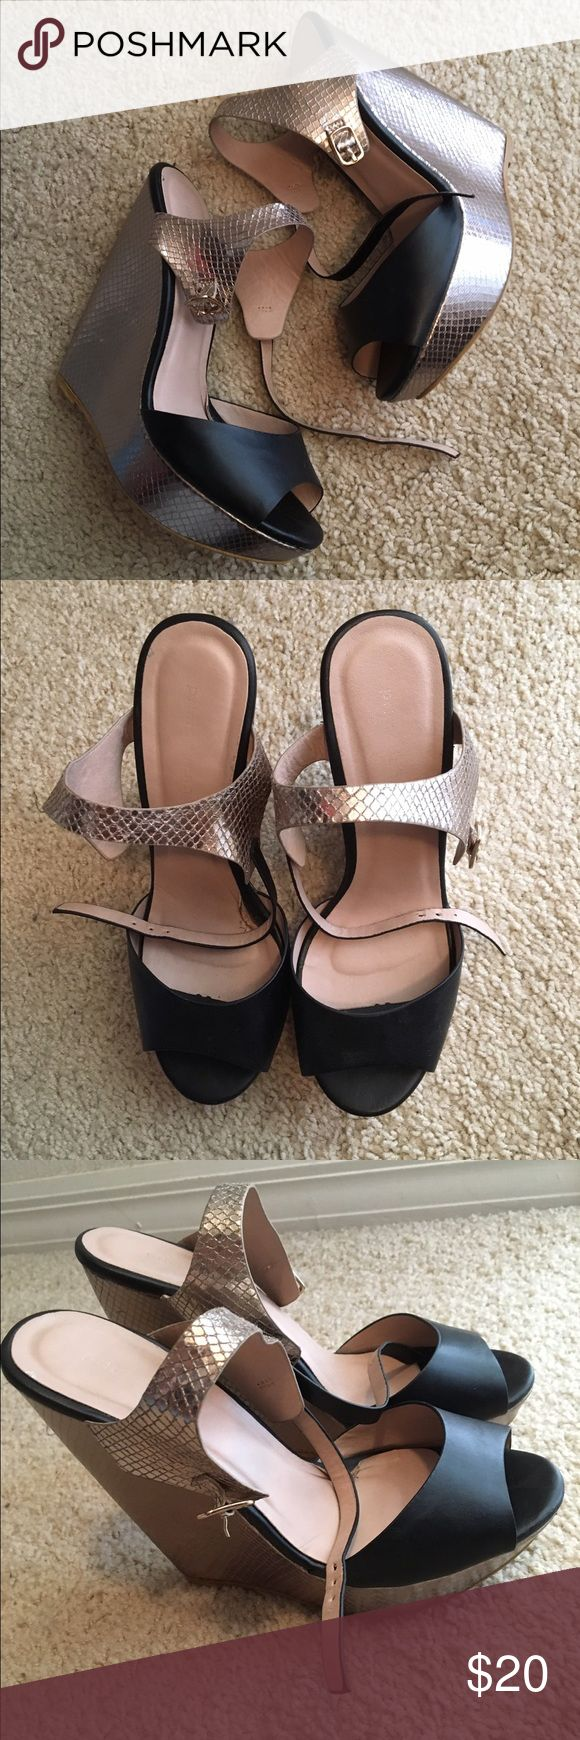 Black and Metallic Wedge Size 7 Shoes Wedges